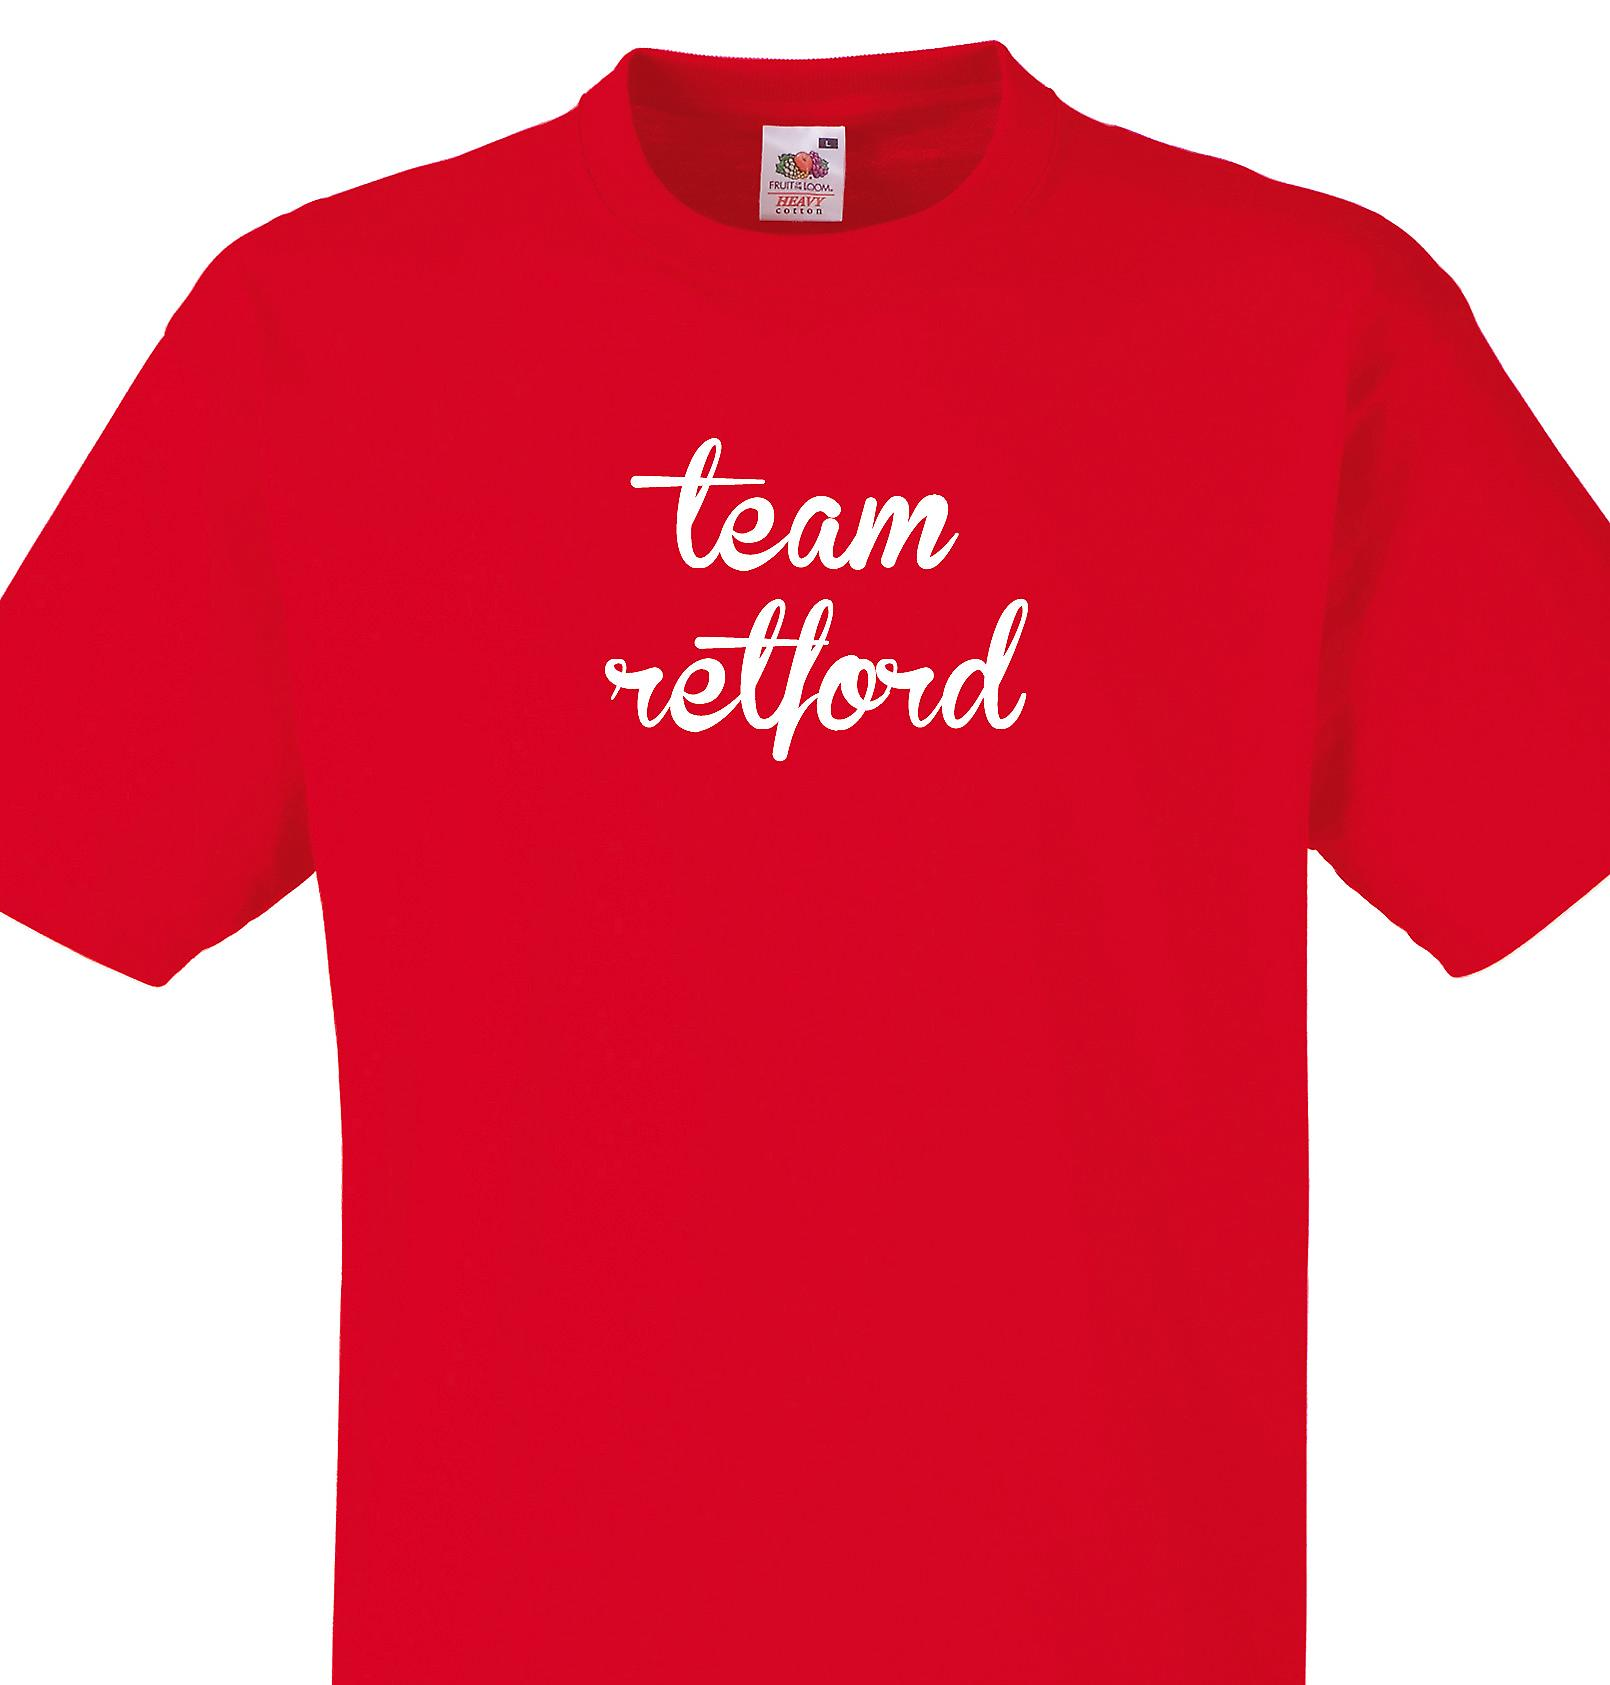 Team Retford Red T shirt